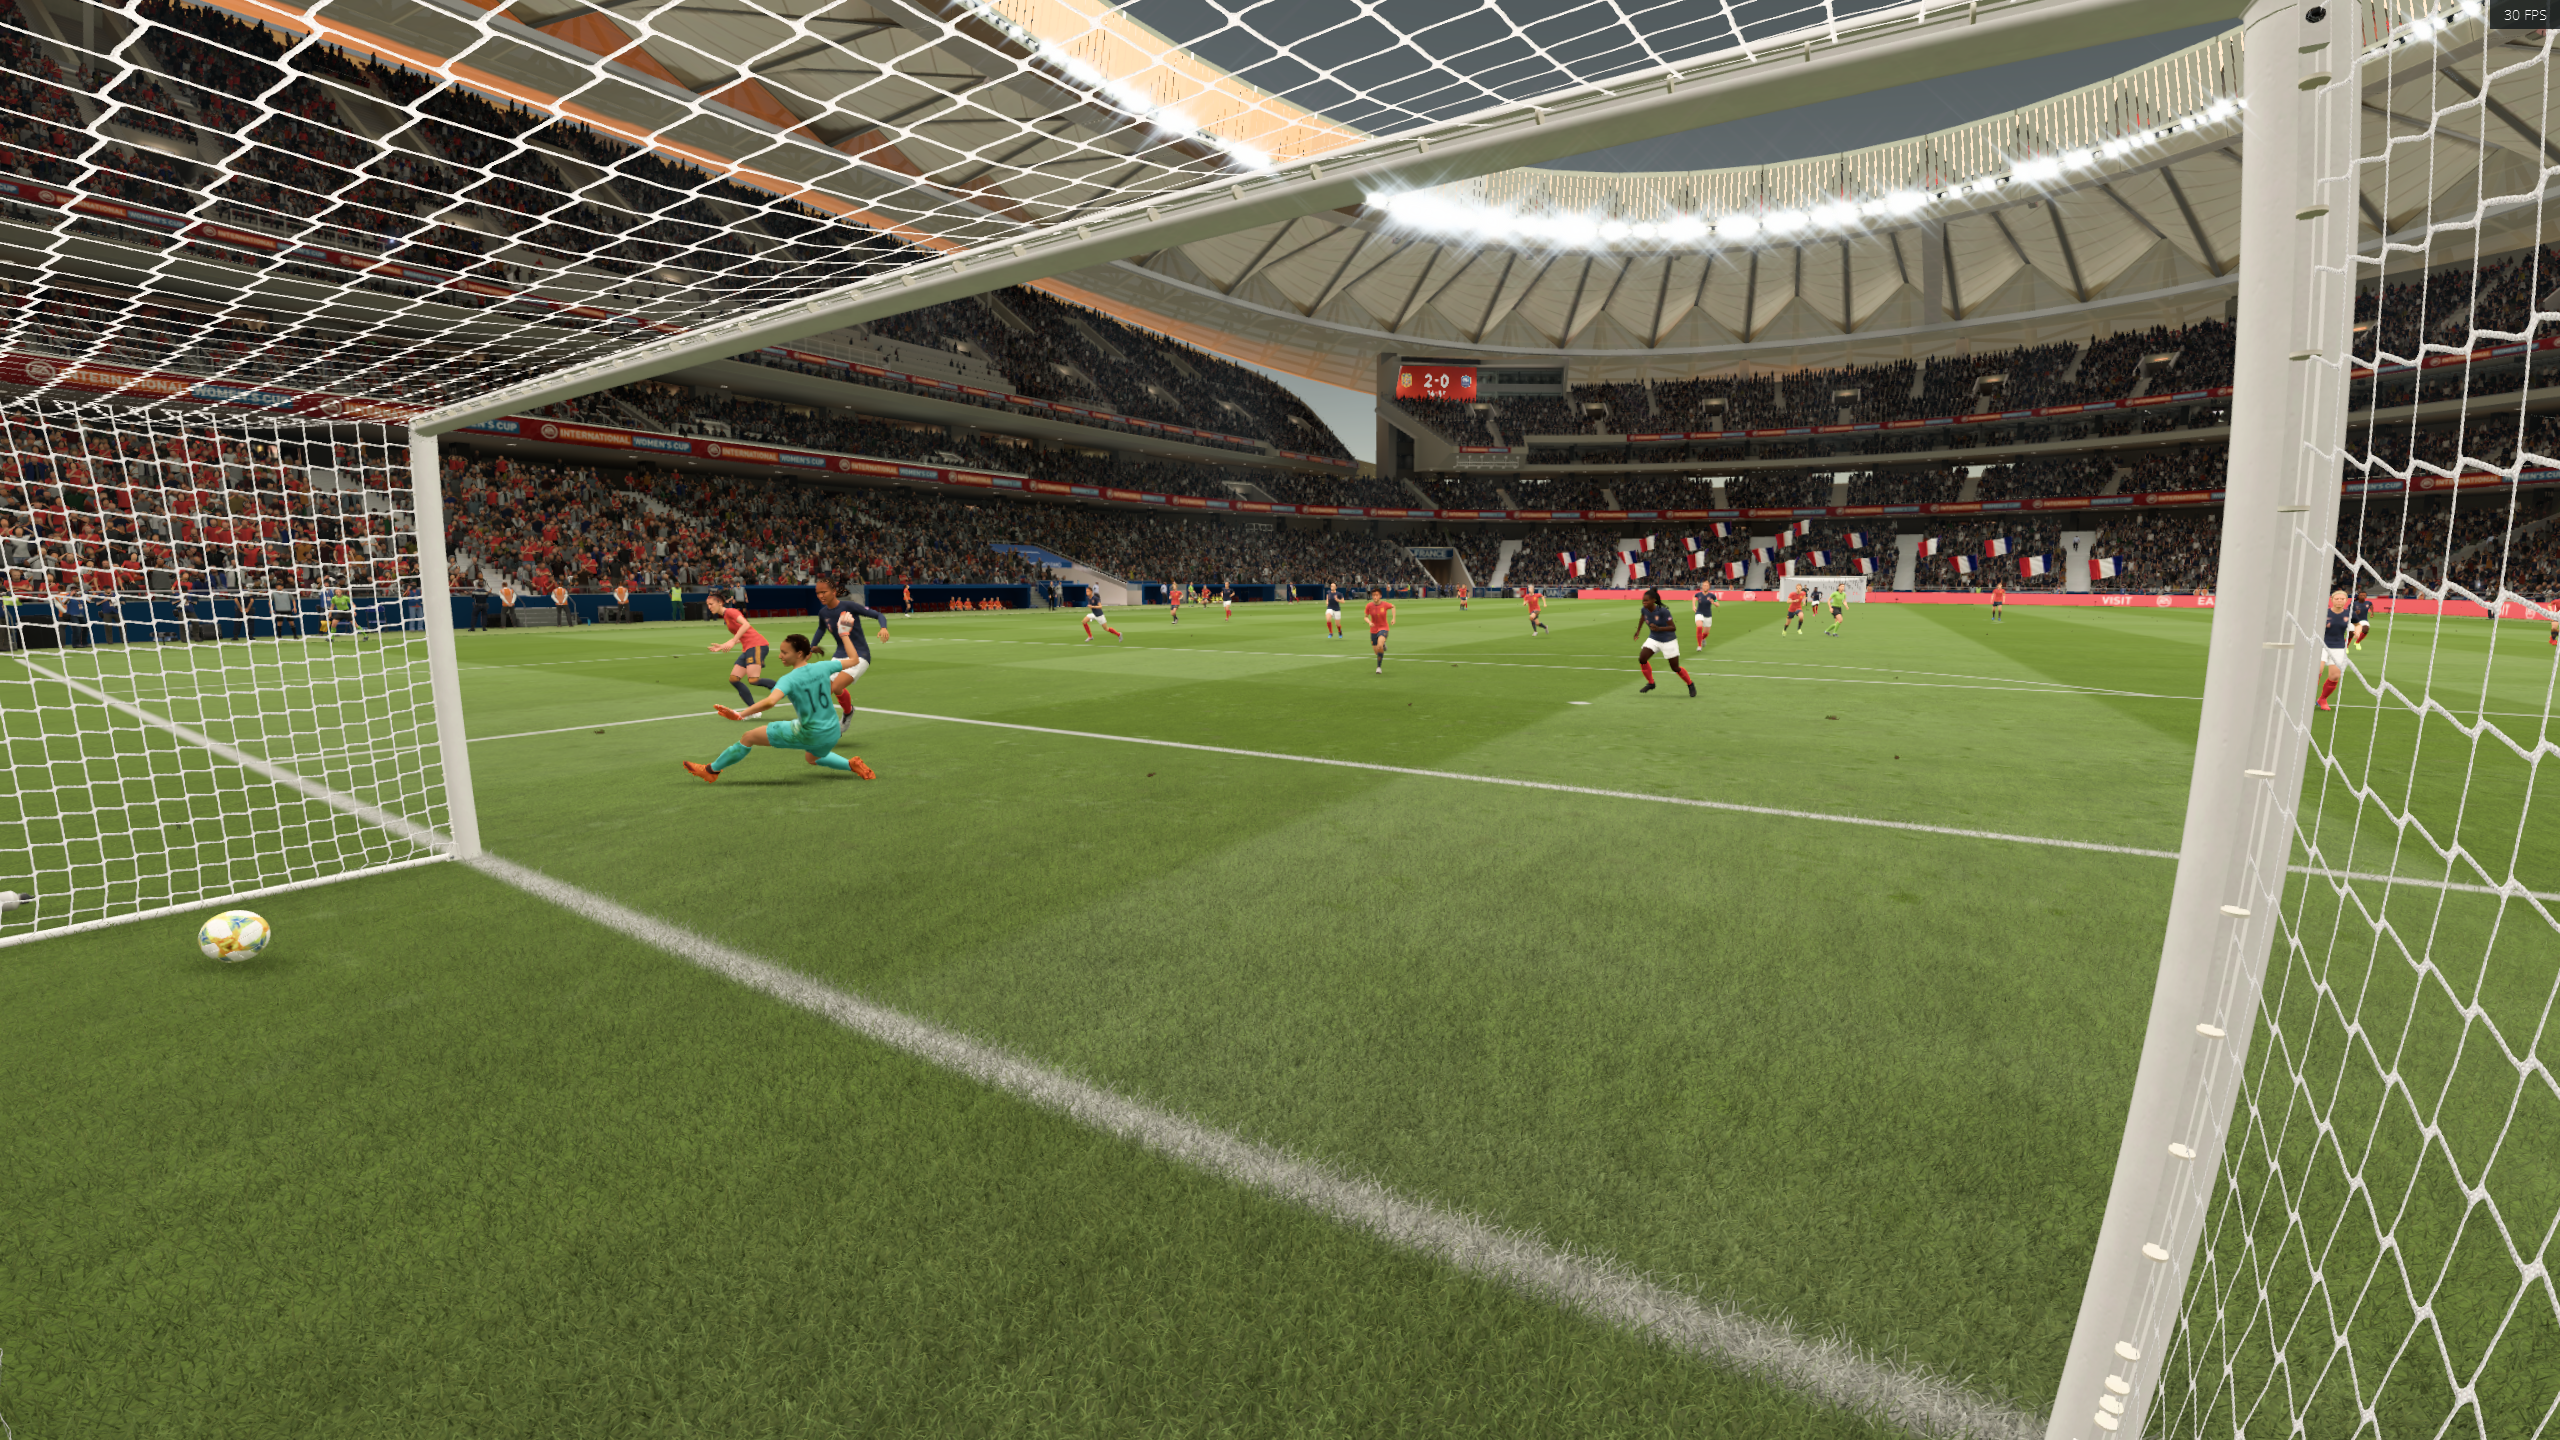 FIFA 20 Screenshot 2019.12.06 - 01.03.42.51